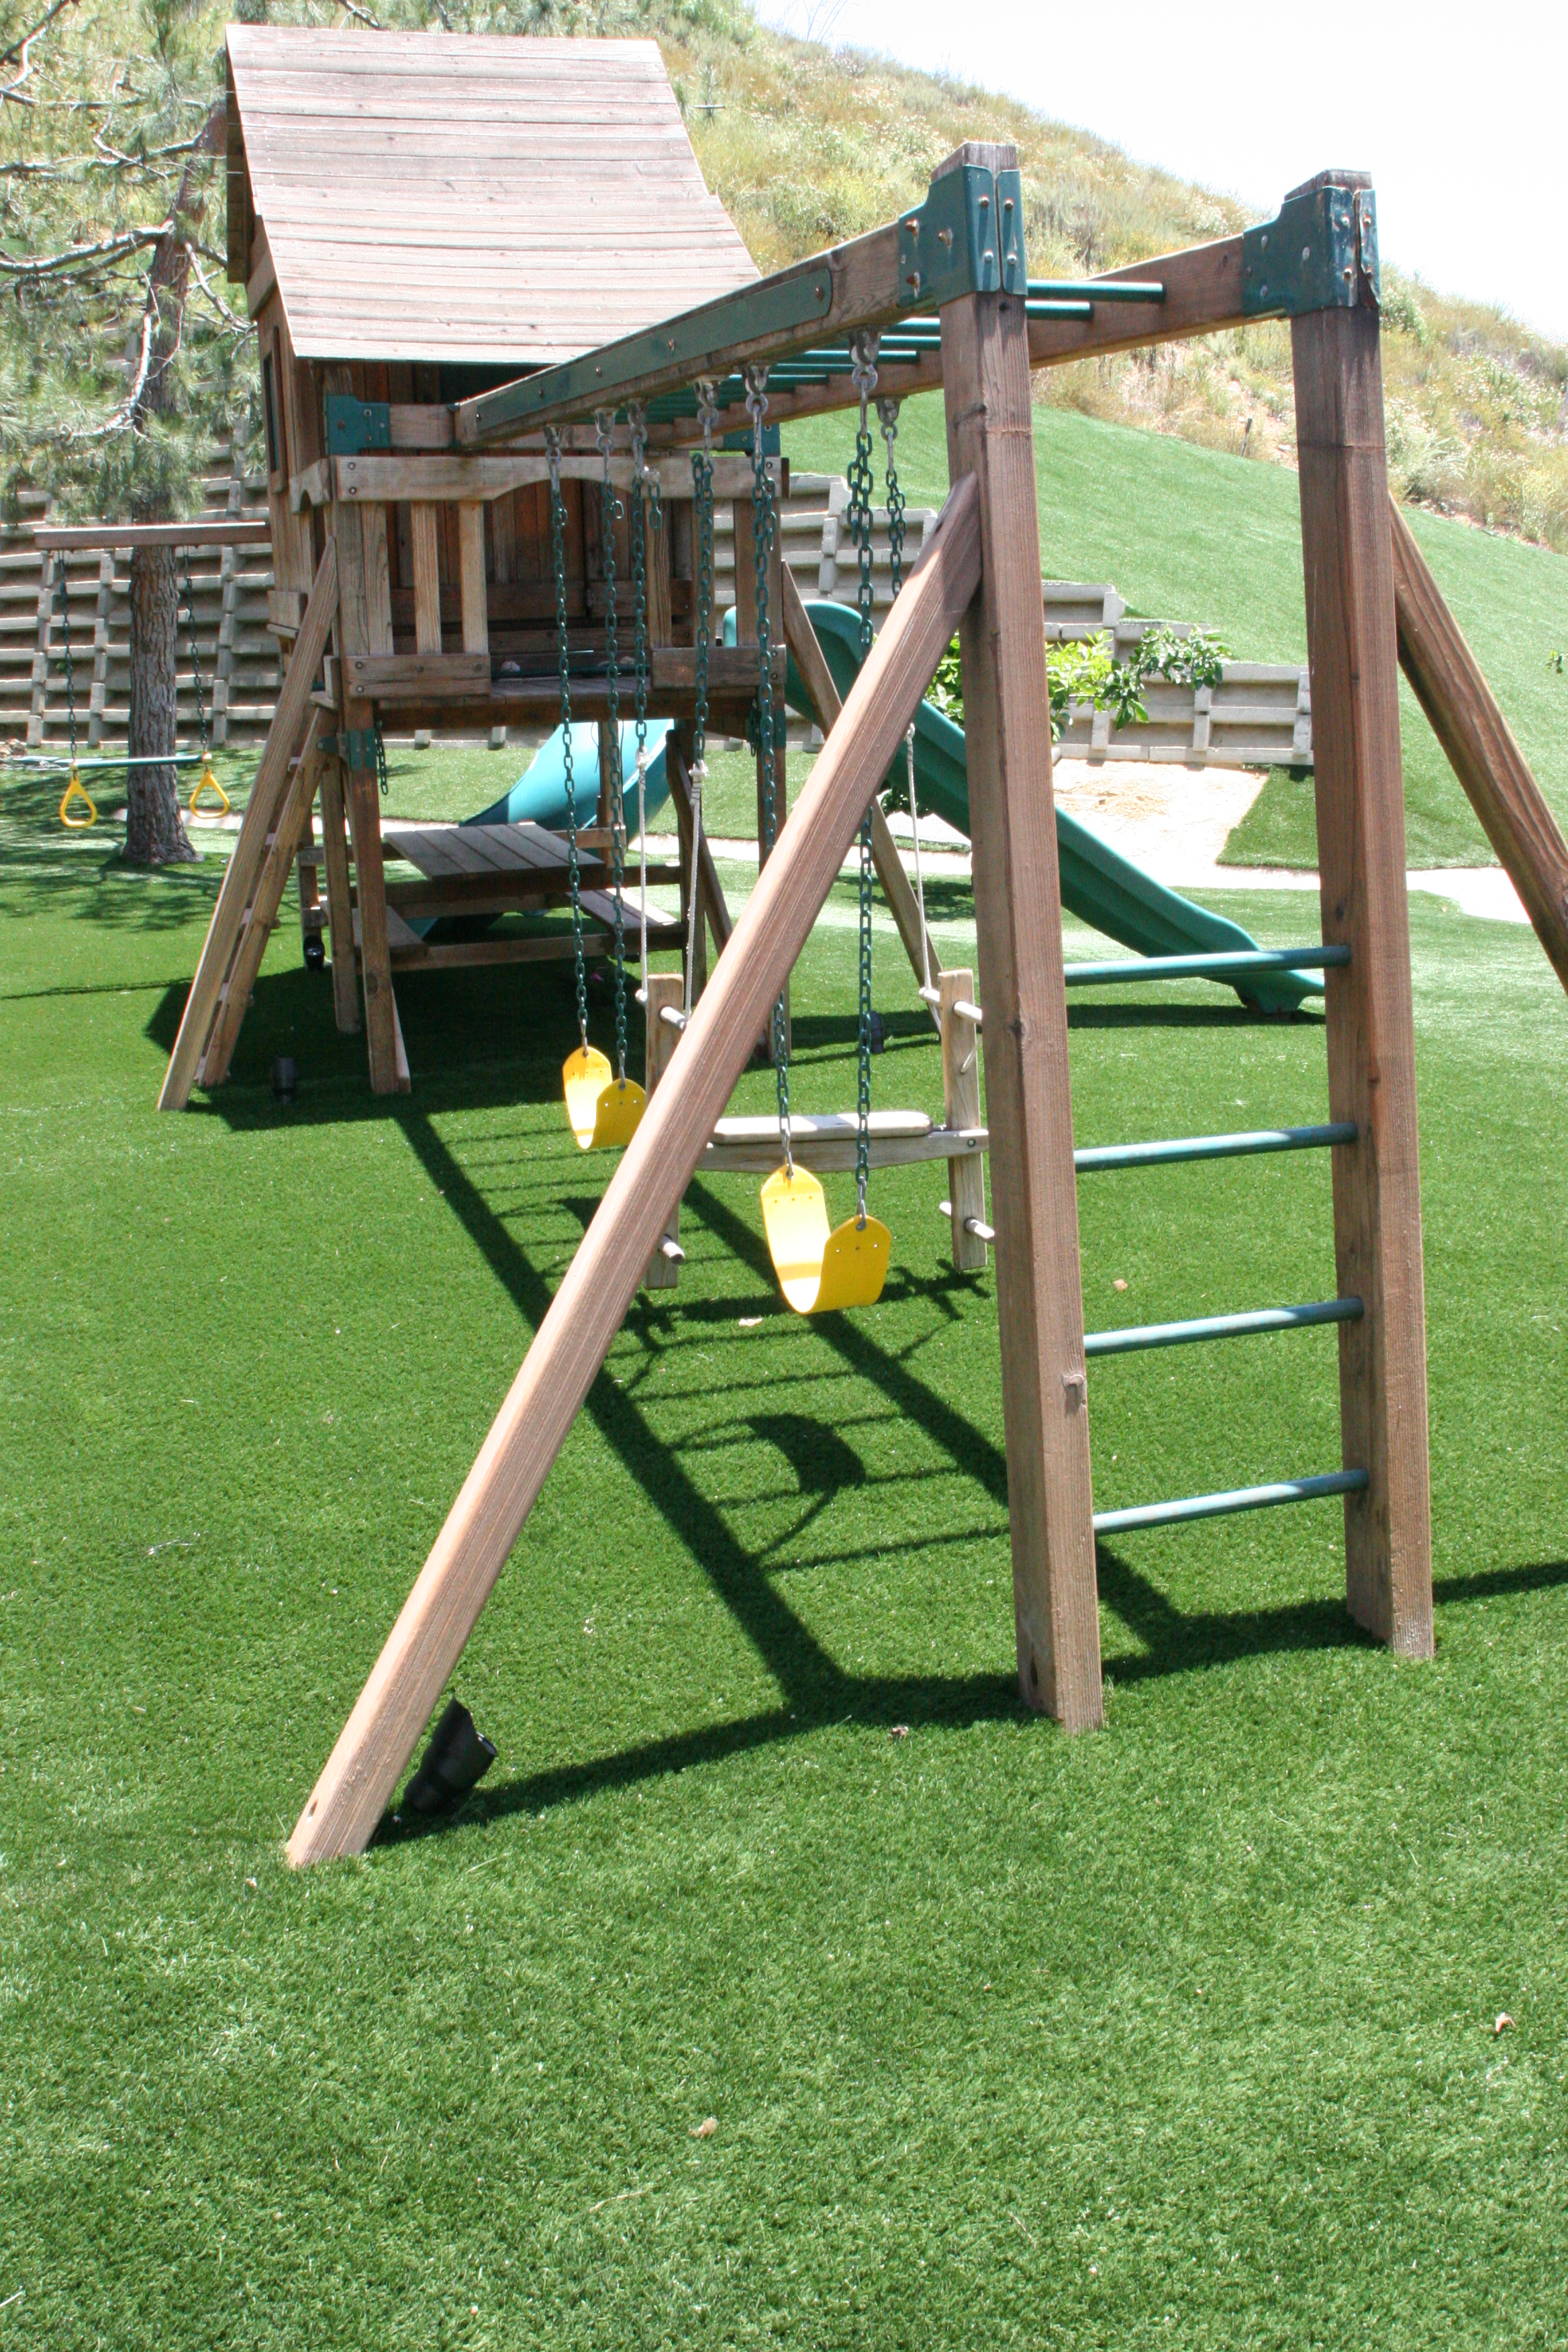 ask your wife for Sacramento Artificial Grass made for kids saftey with your back yard Playgrounds  and your putting green...